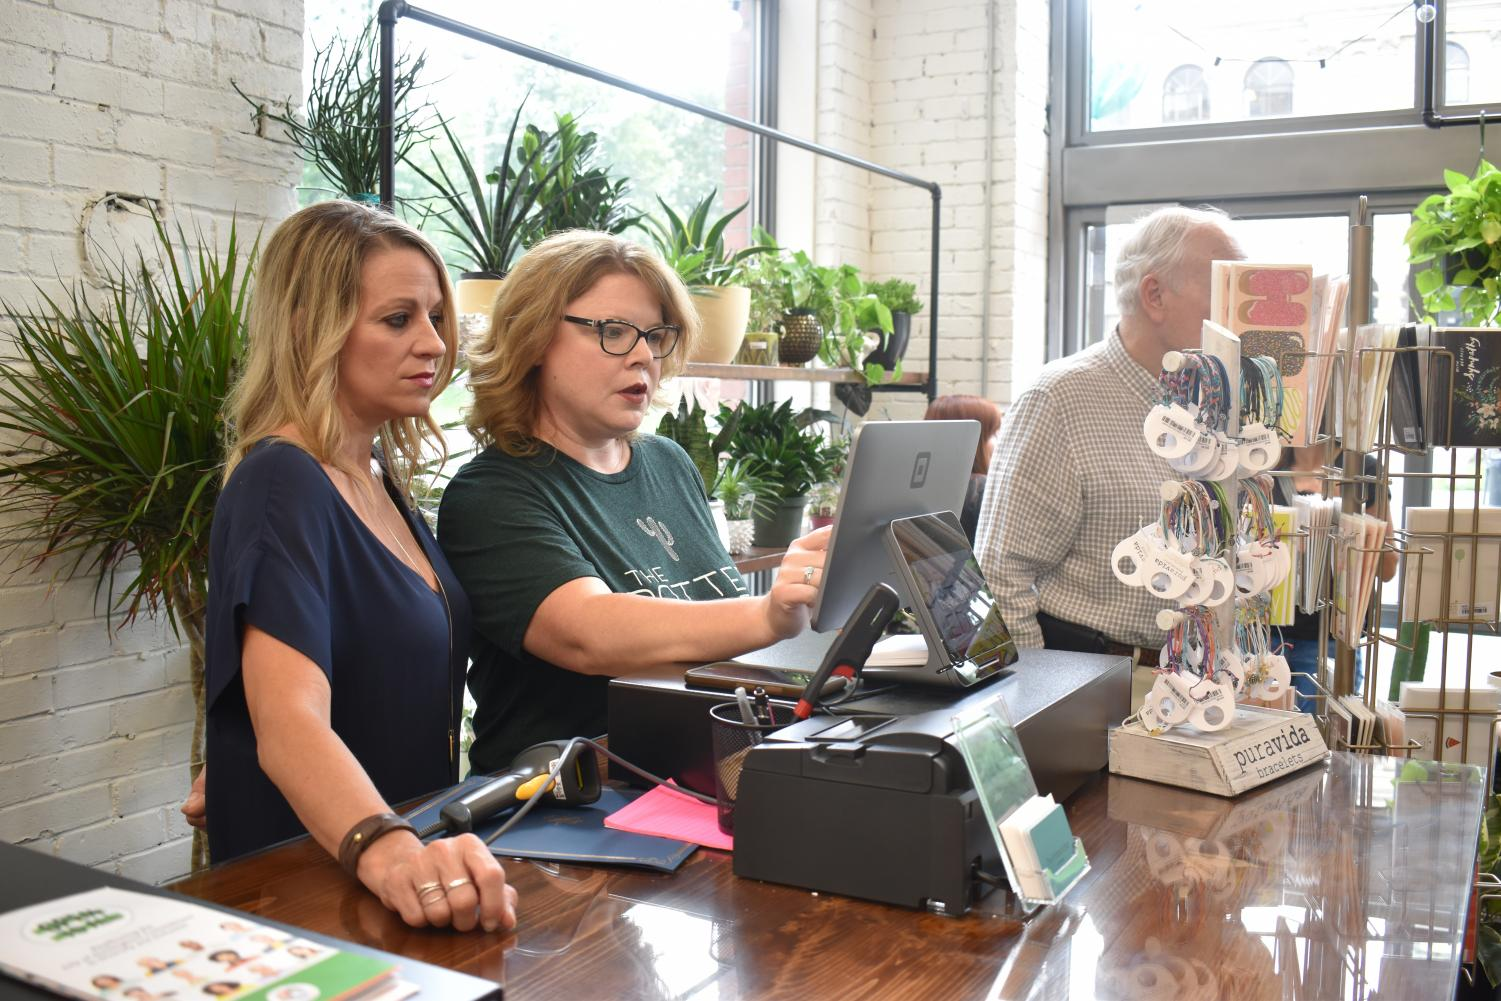 Wendy Canaday (right) and Lori Clary (left) working the register for their small business, The Potted Edge, in the progress building in downtown Huntington.